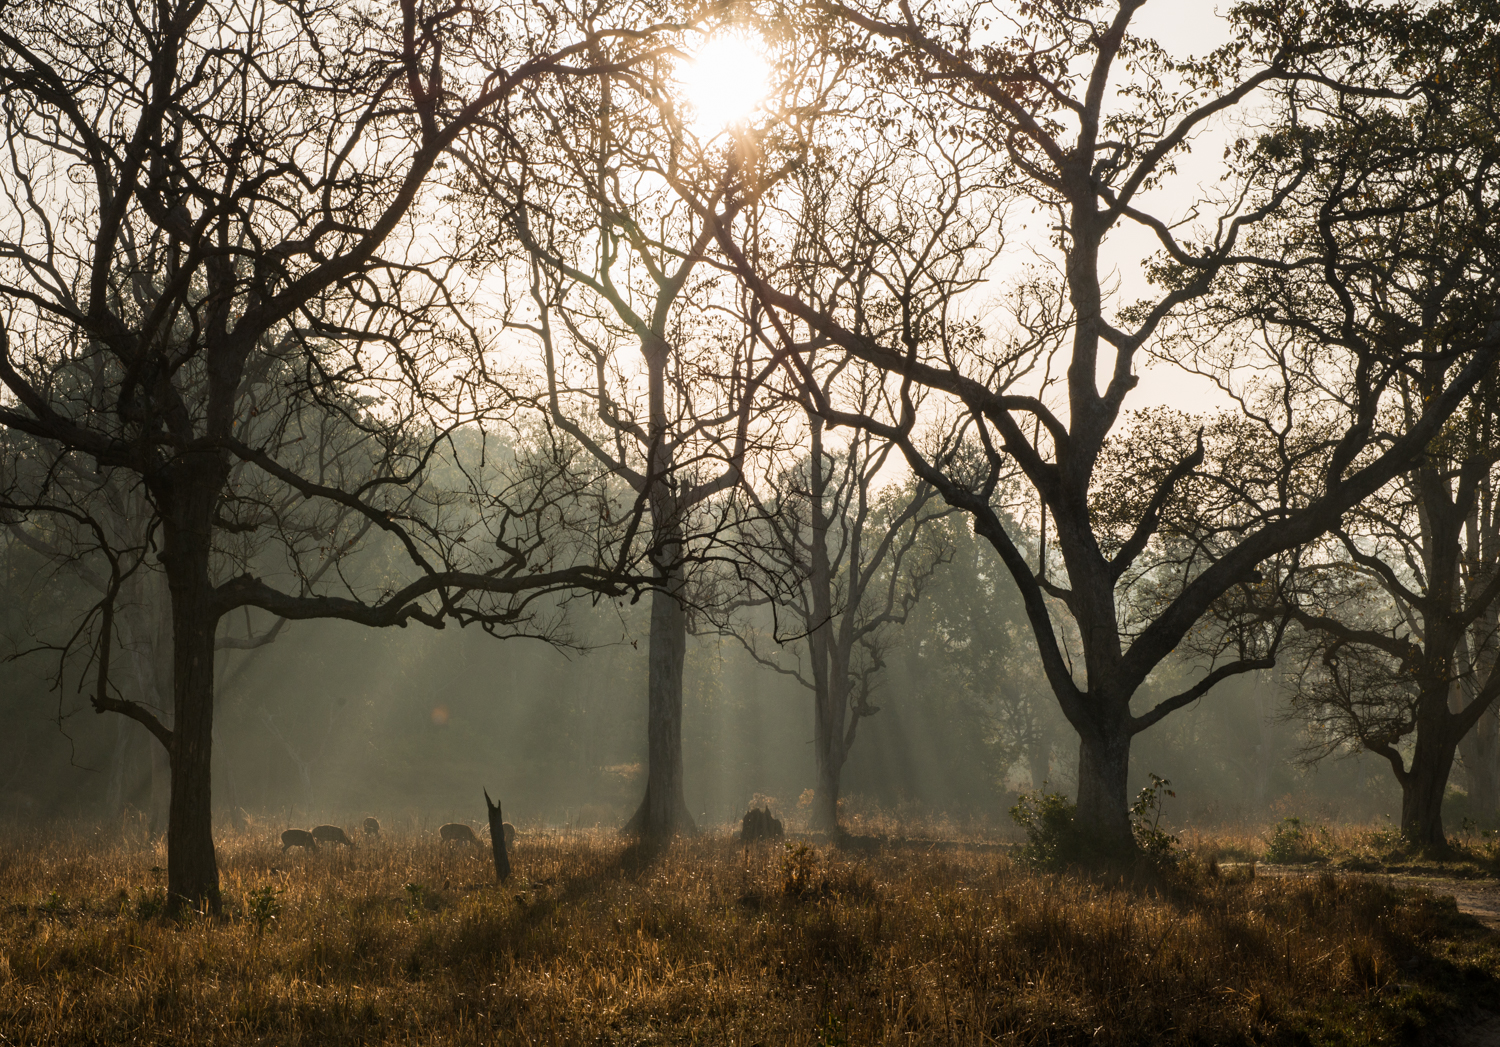 Rays of light permeate the trees and illuminate the wildlife below at the Corbett Tiger Reserve - Ramnagar, India.